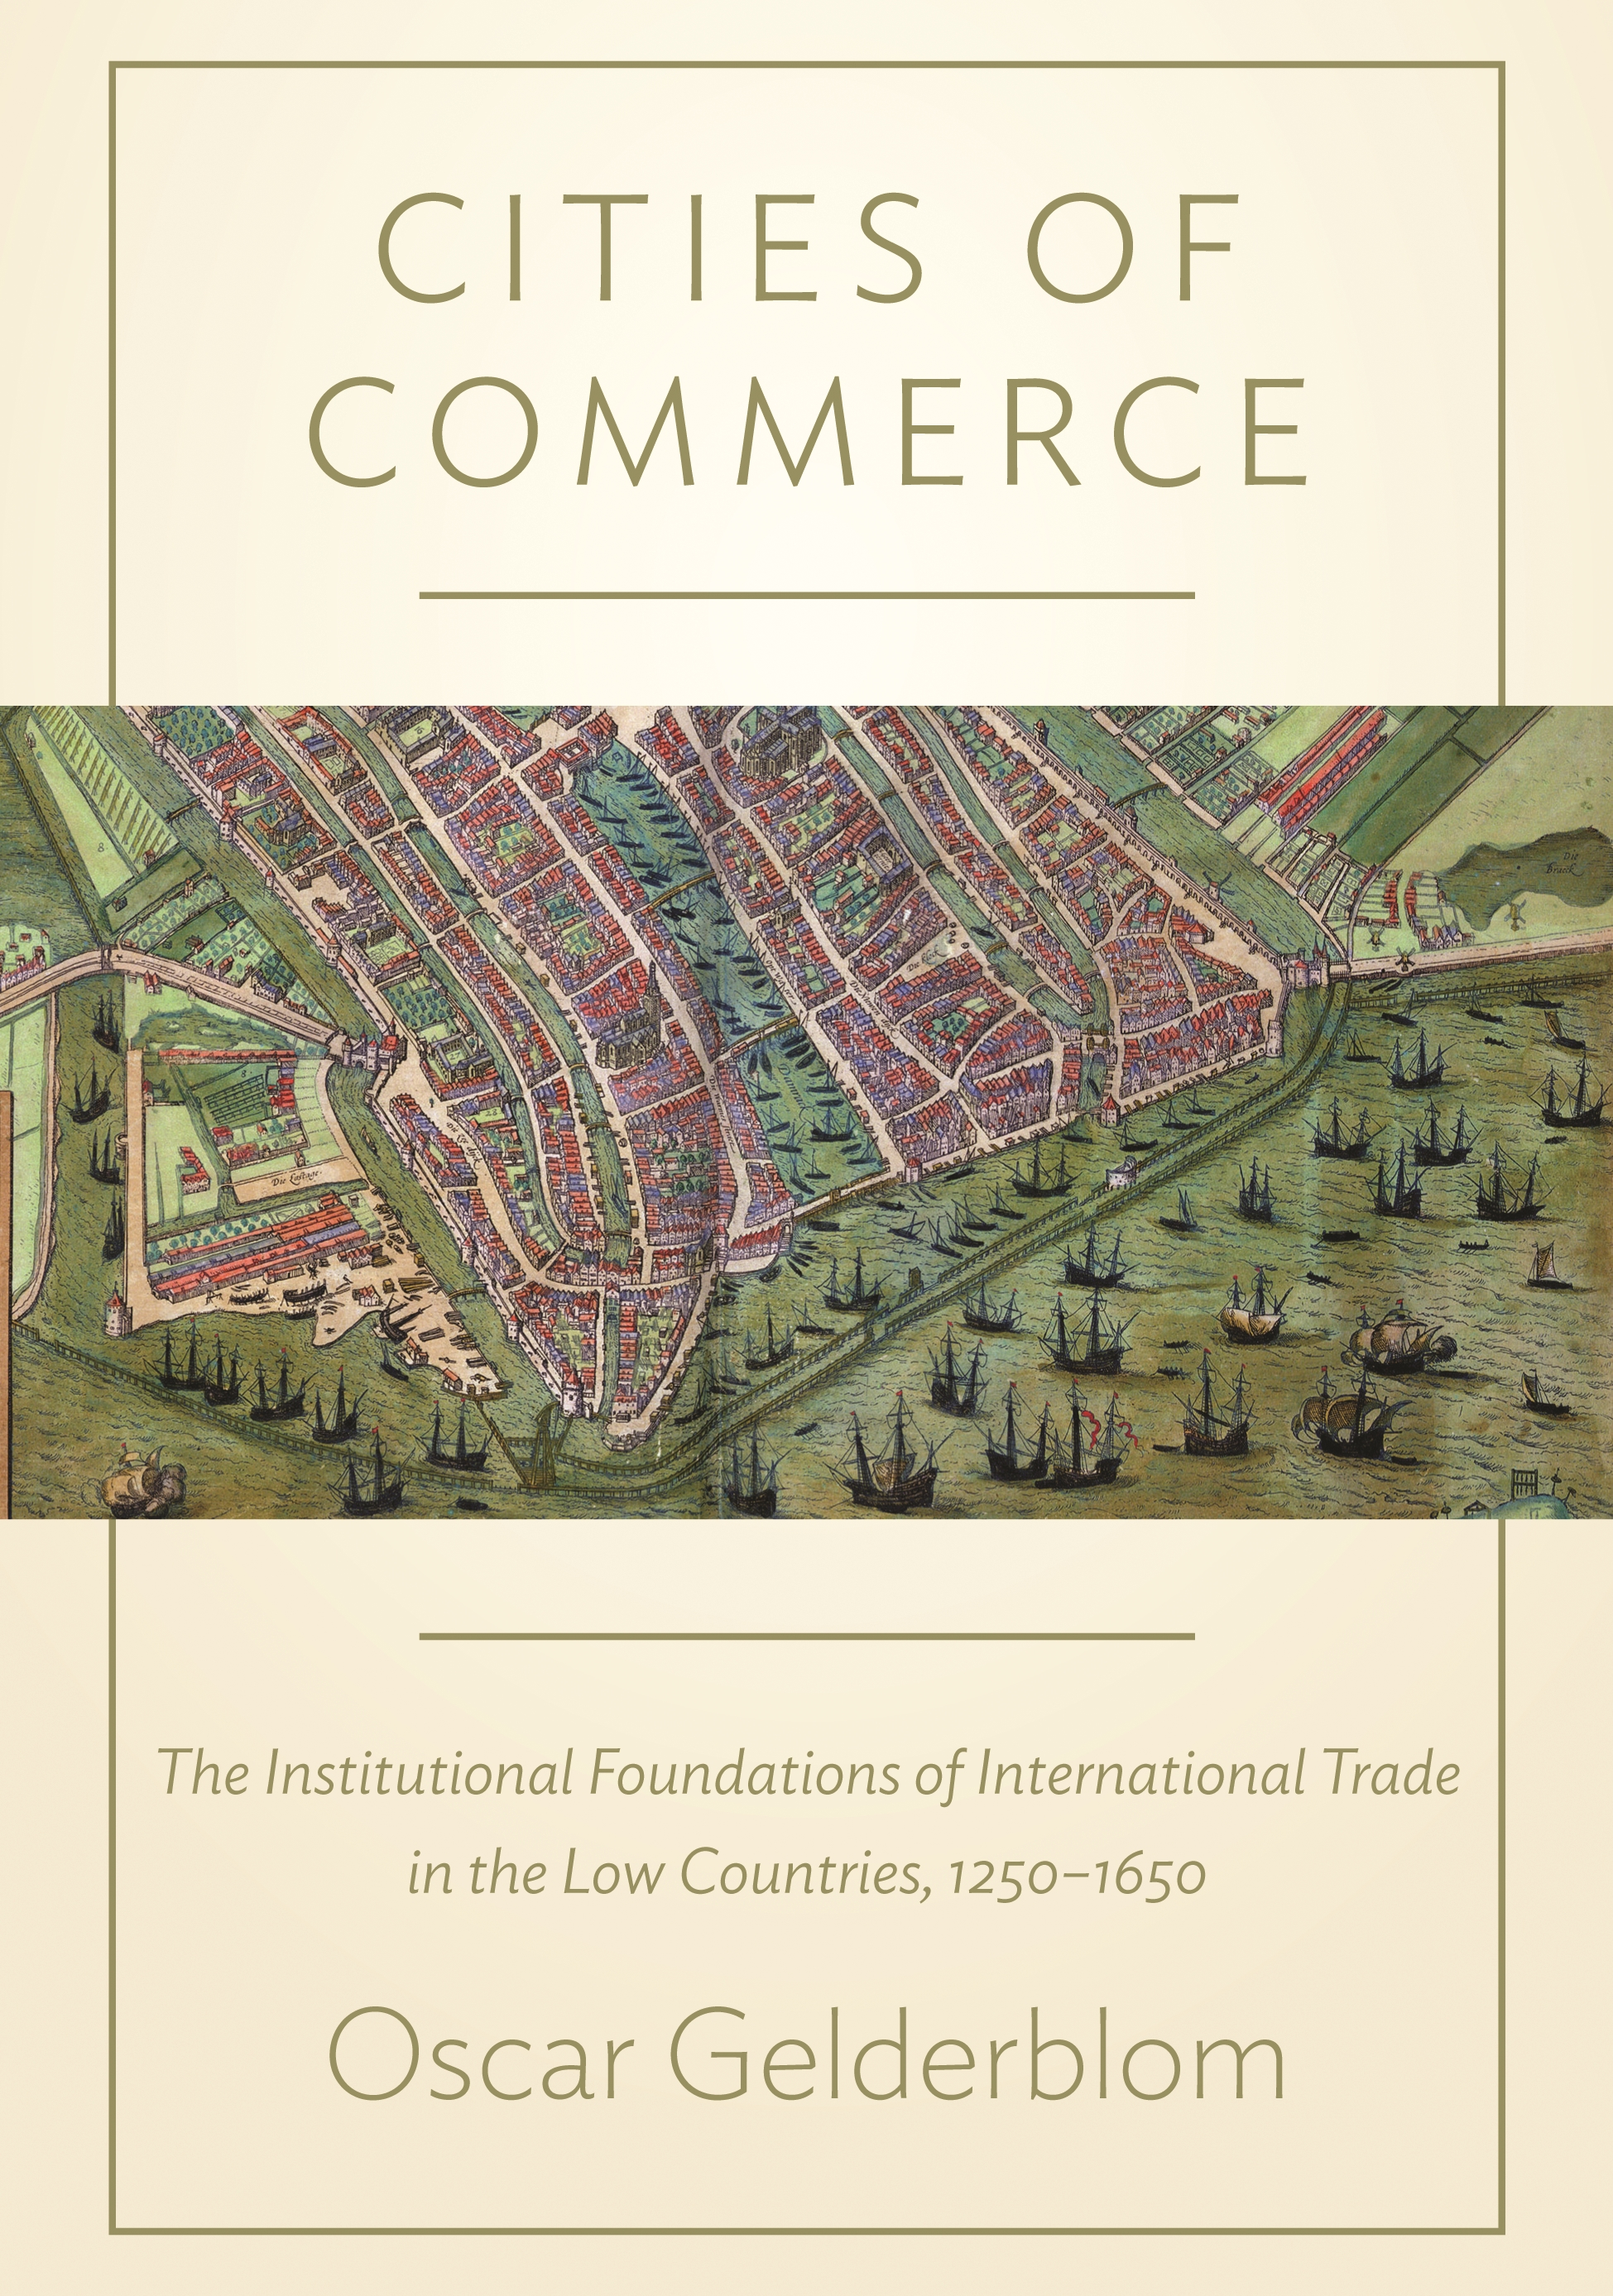 Download Ebook Cities of Commerce by Oscar Gelderblom Pdf